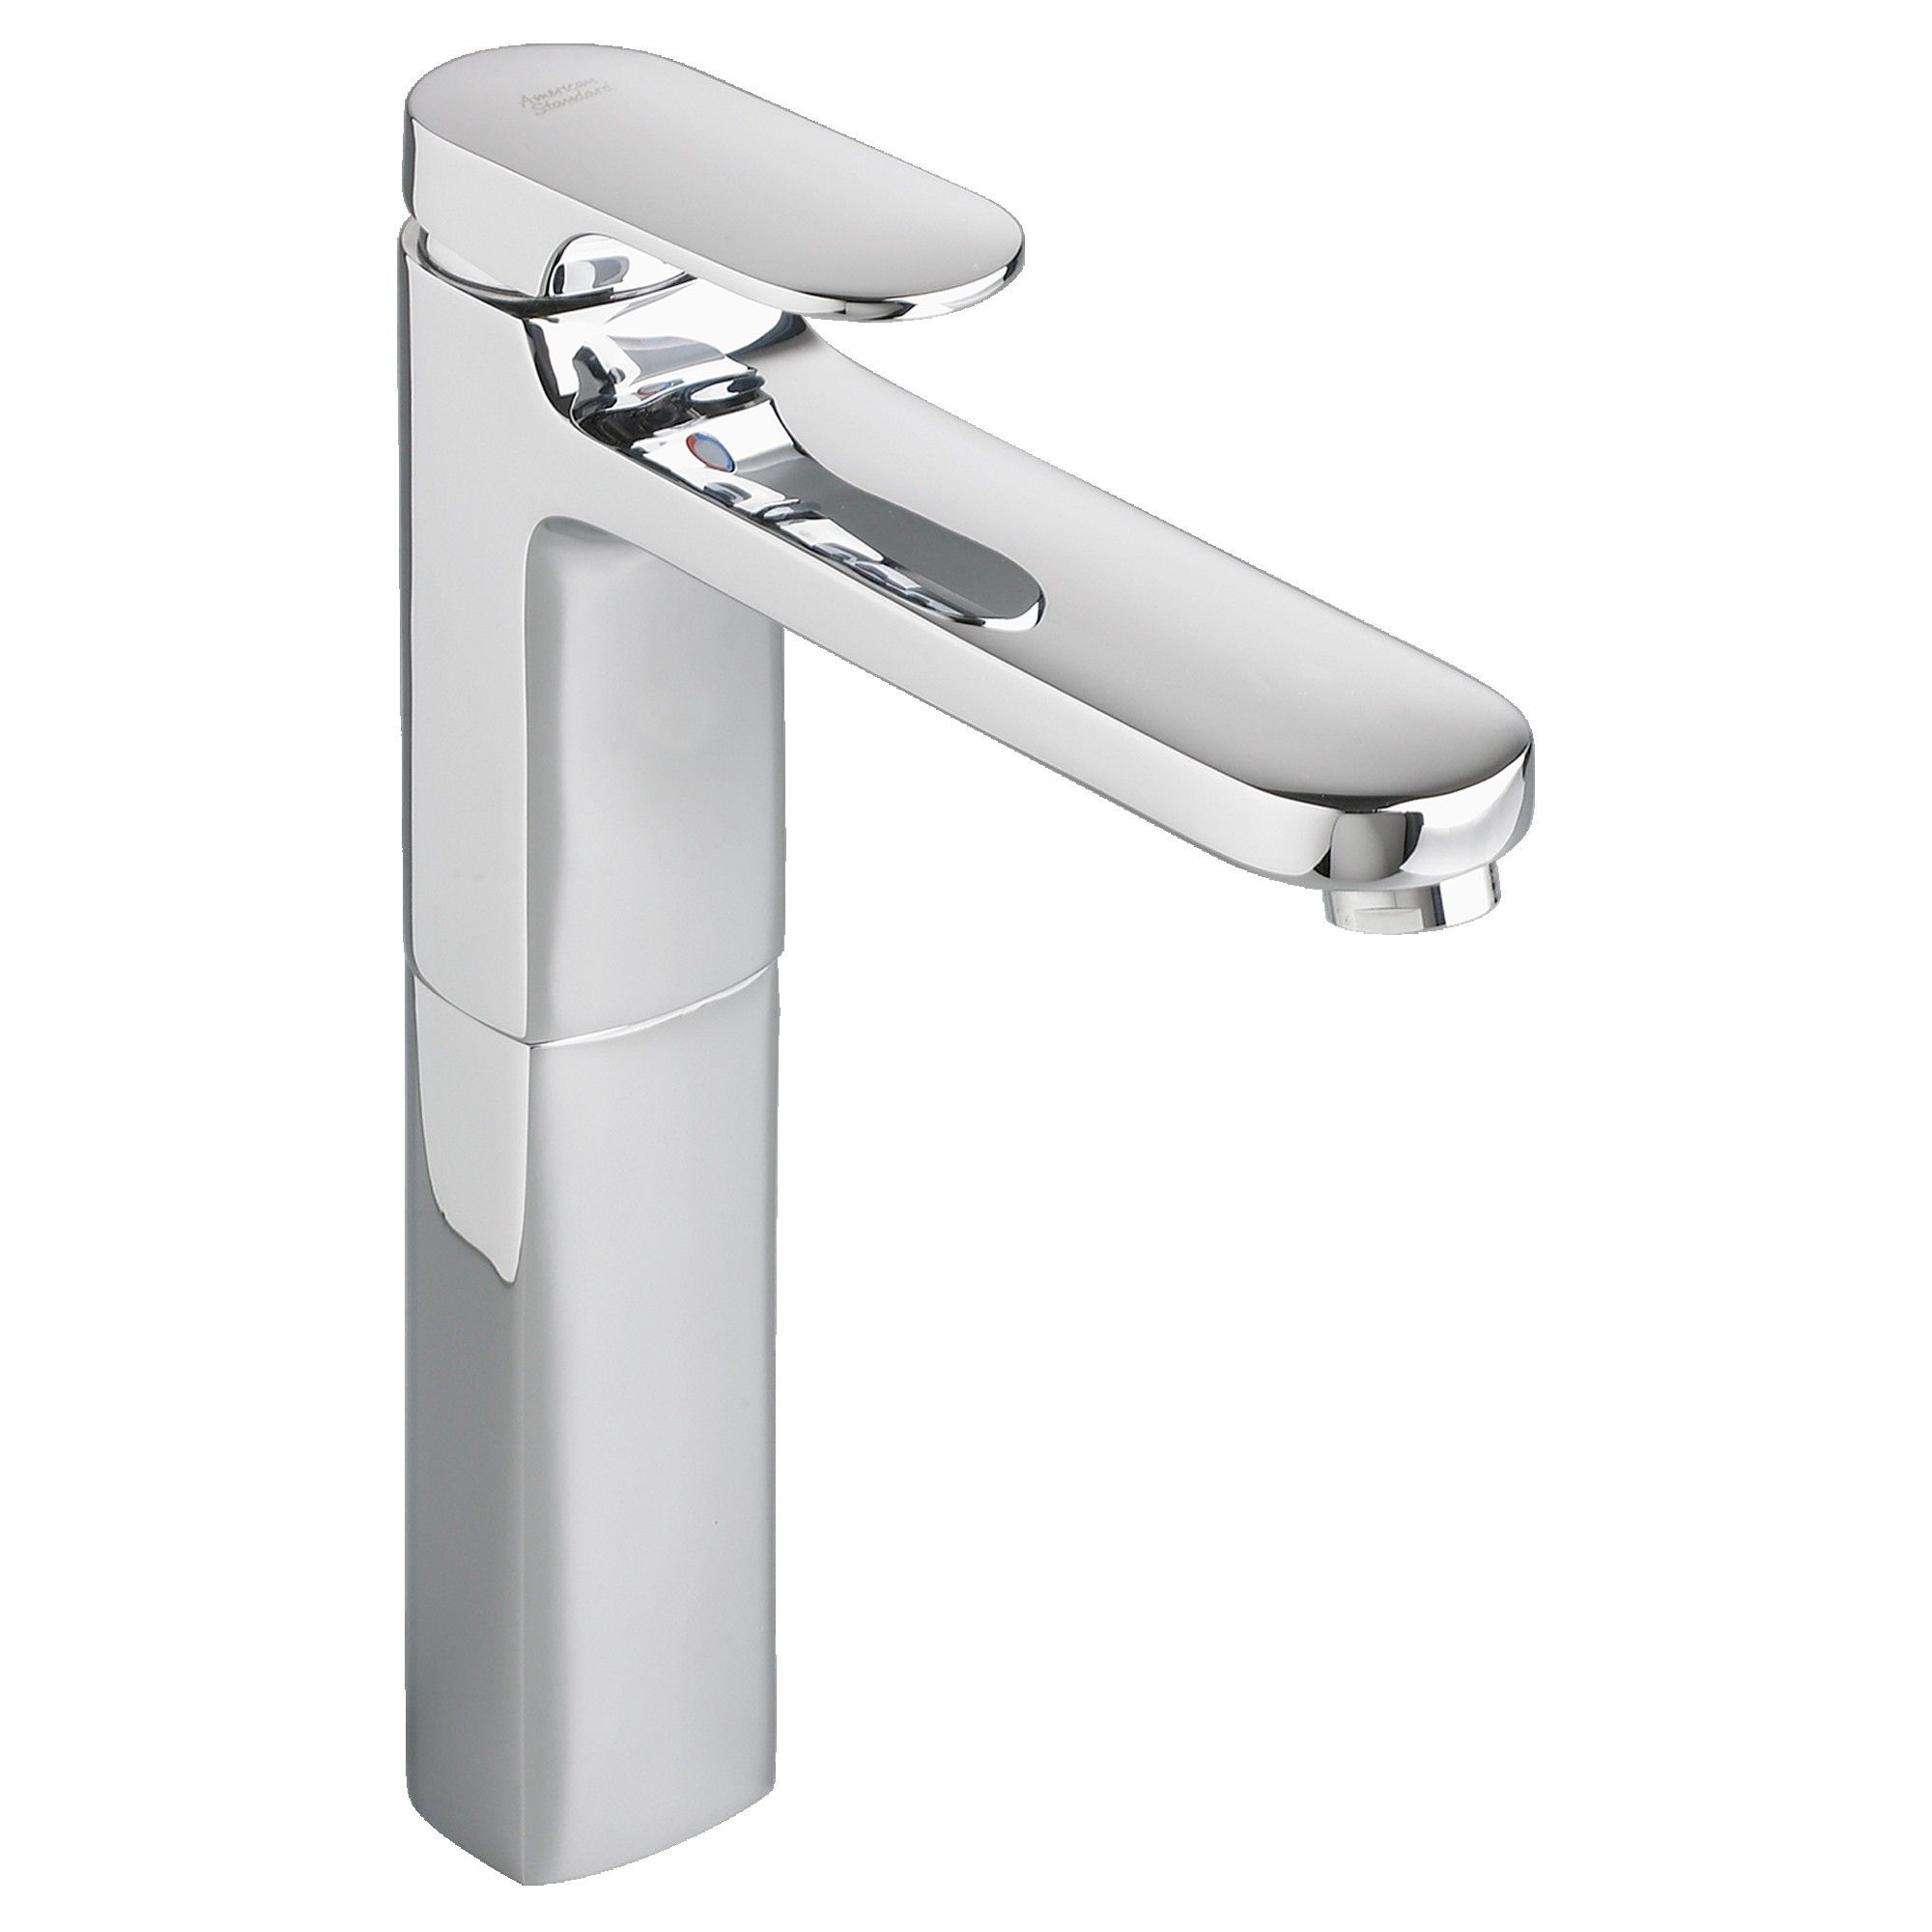 Luxury Bathroom Sink Faucets Canada | Bathroom sink faucets, Faucet ...